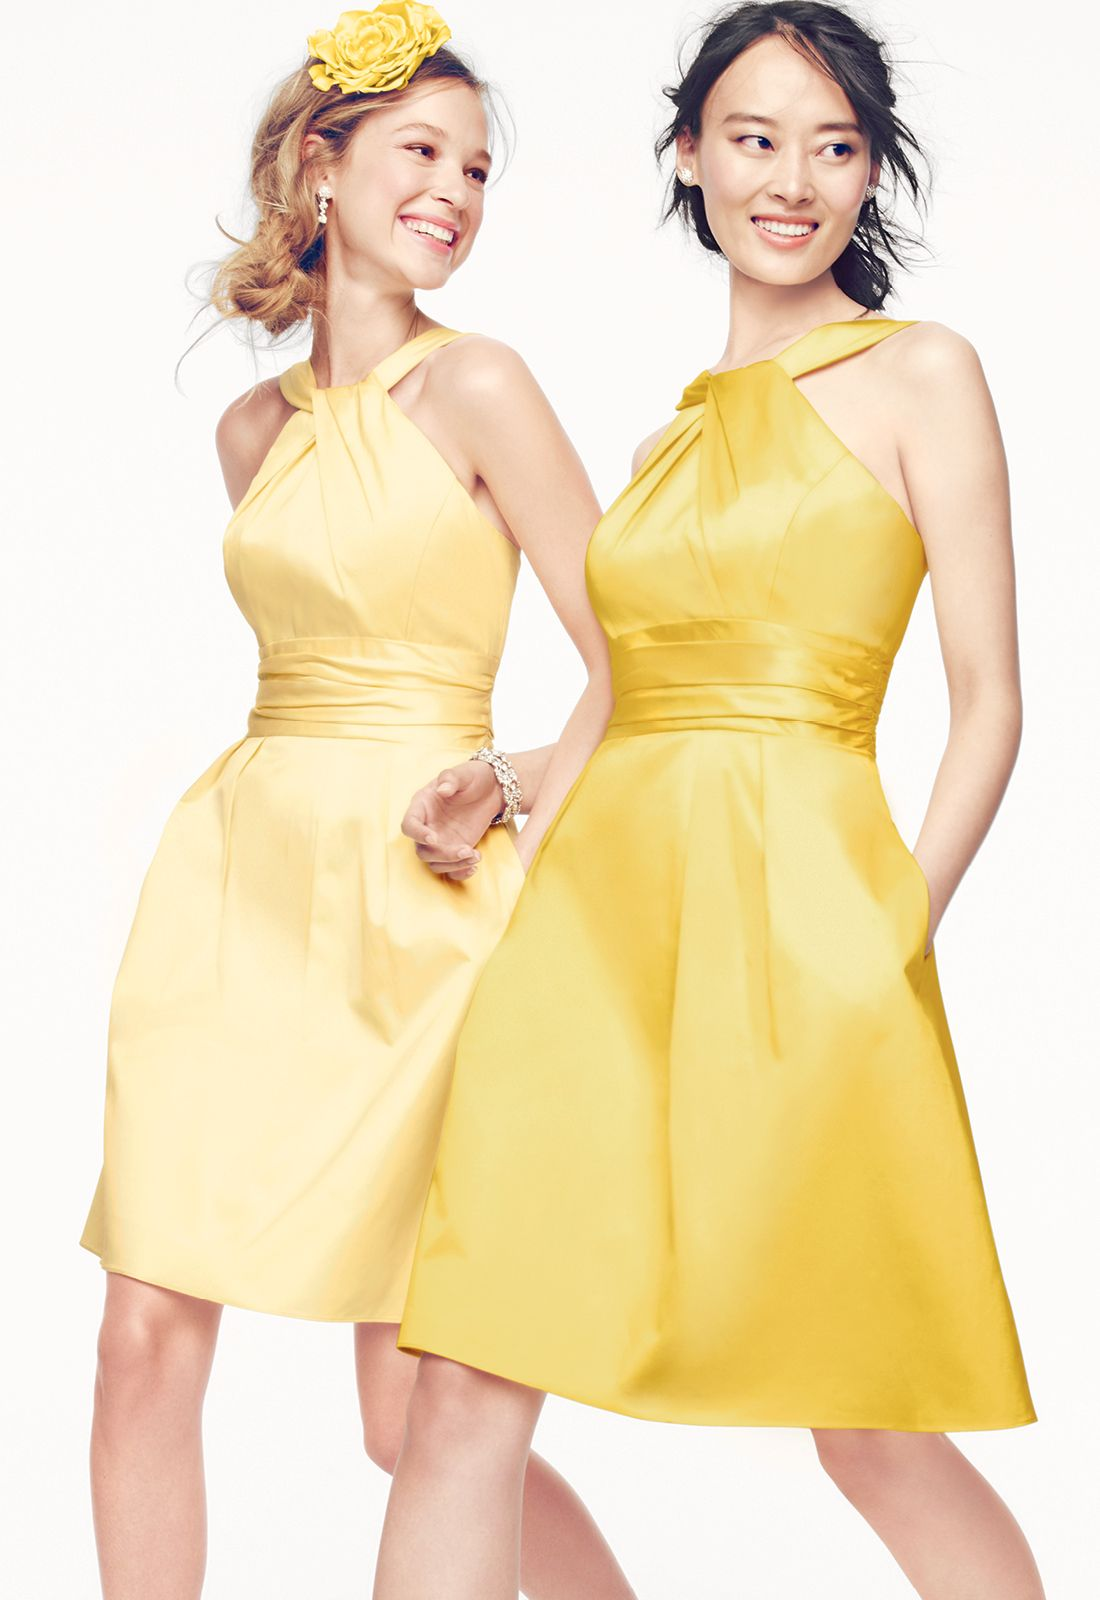 David s Bridal Short Cotton Bridesmaid Dress with Y Neck and Skirt     David s Bridal Short Cotton Bridesmaid Dress with Y Neck and Skirt Pleating   Style 83690 in Canary and Sunbeam